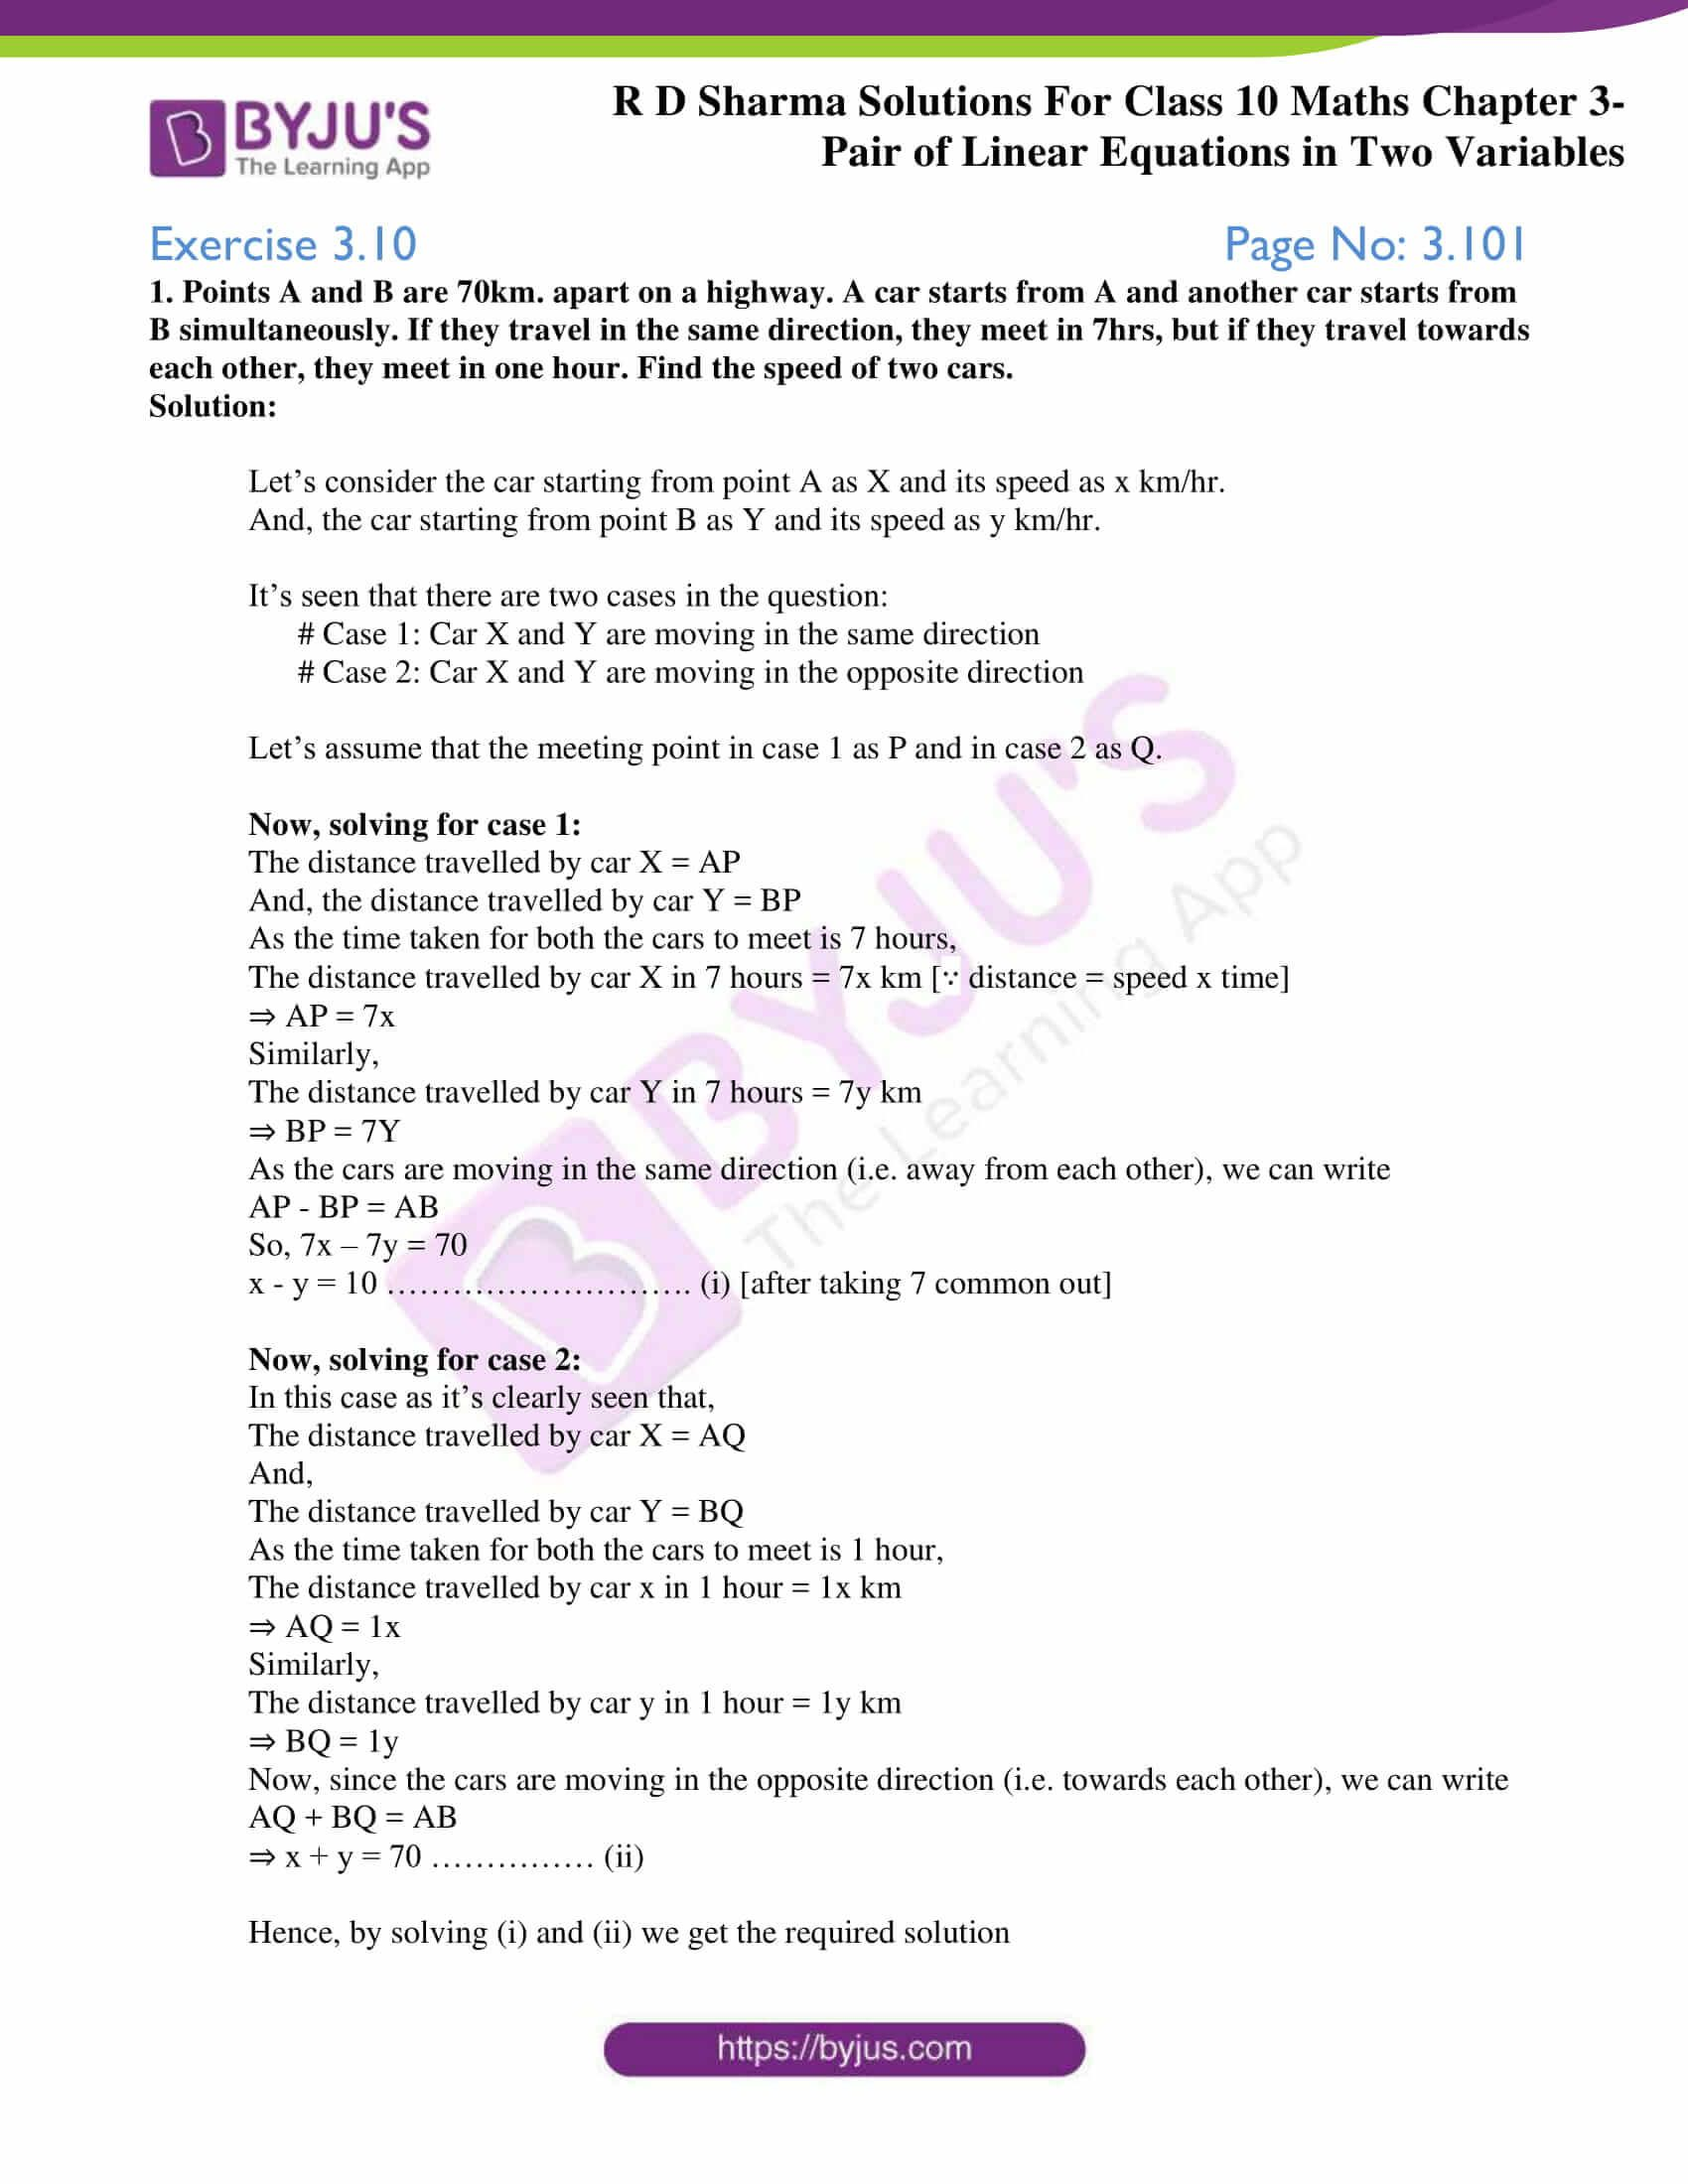 Rd Sharma Solutions For Class 10 Chapter 3 Ex 3 10 Linear Equations Equations Solutions [ 2200 x 1700 Pixel ]